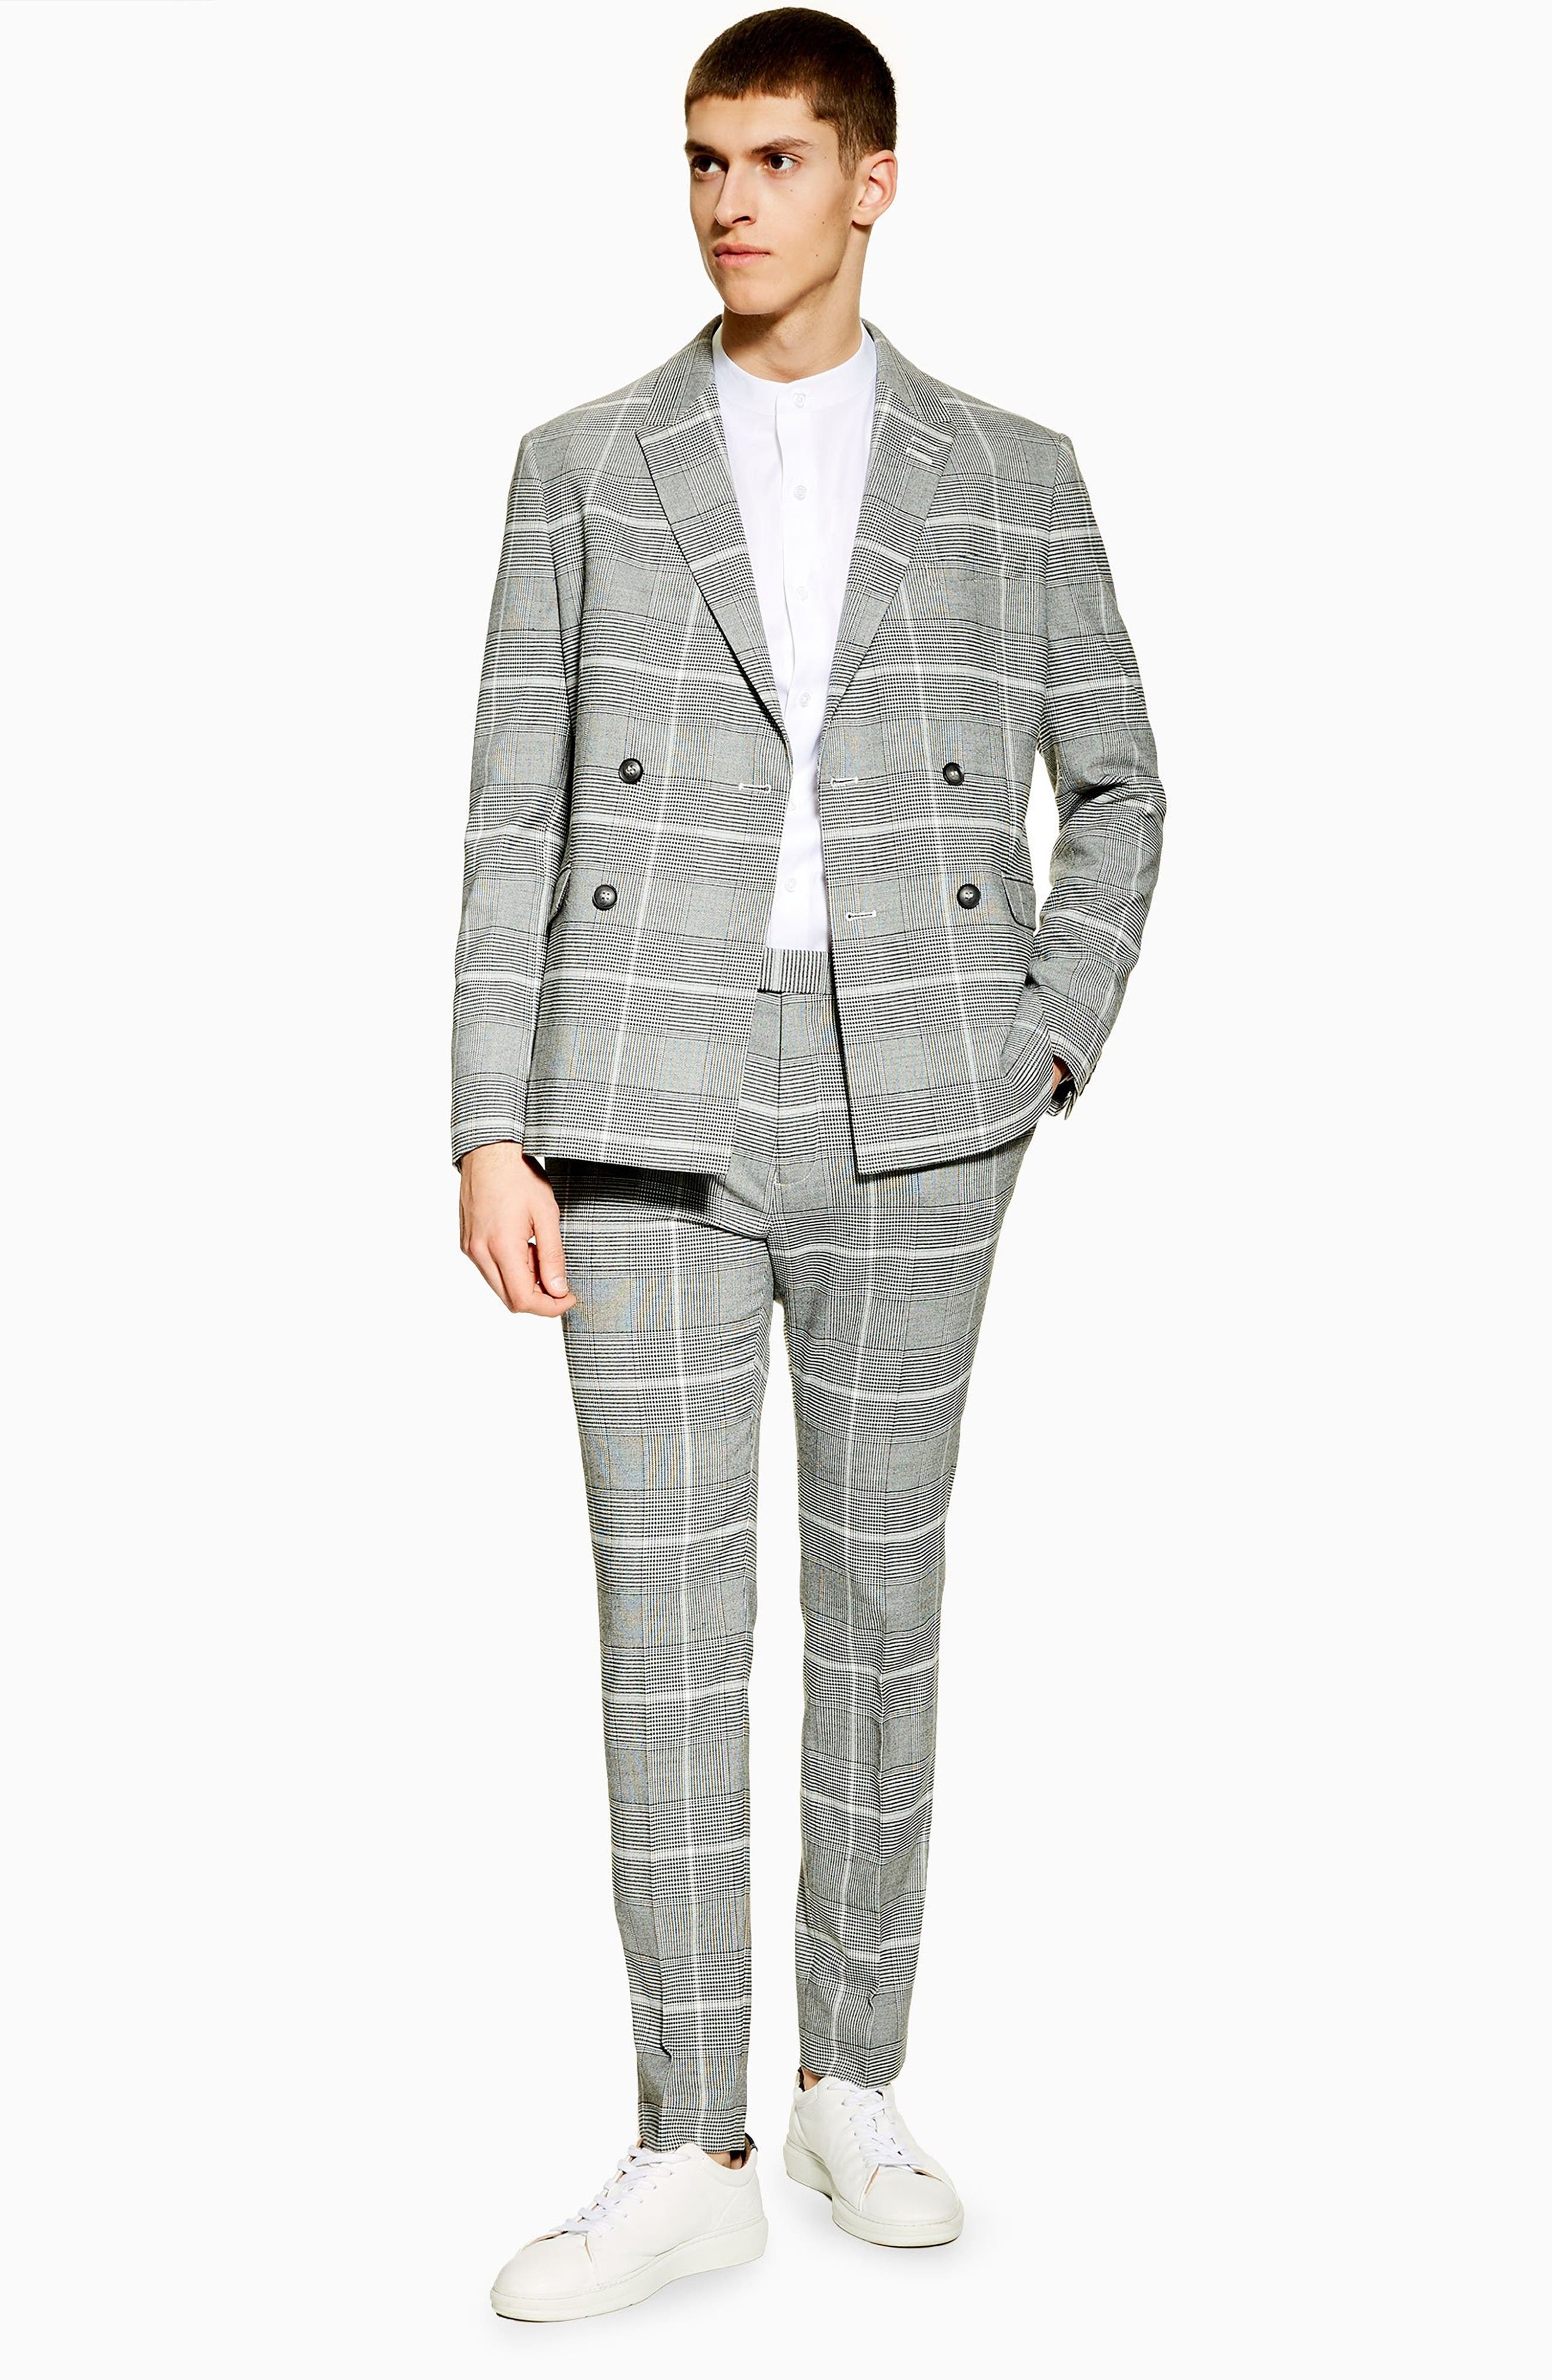 TOPMAN, Skinny Fit Check Suit Jacket, Alternate thumbnail 5, color, 020